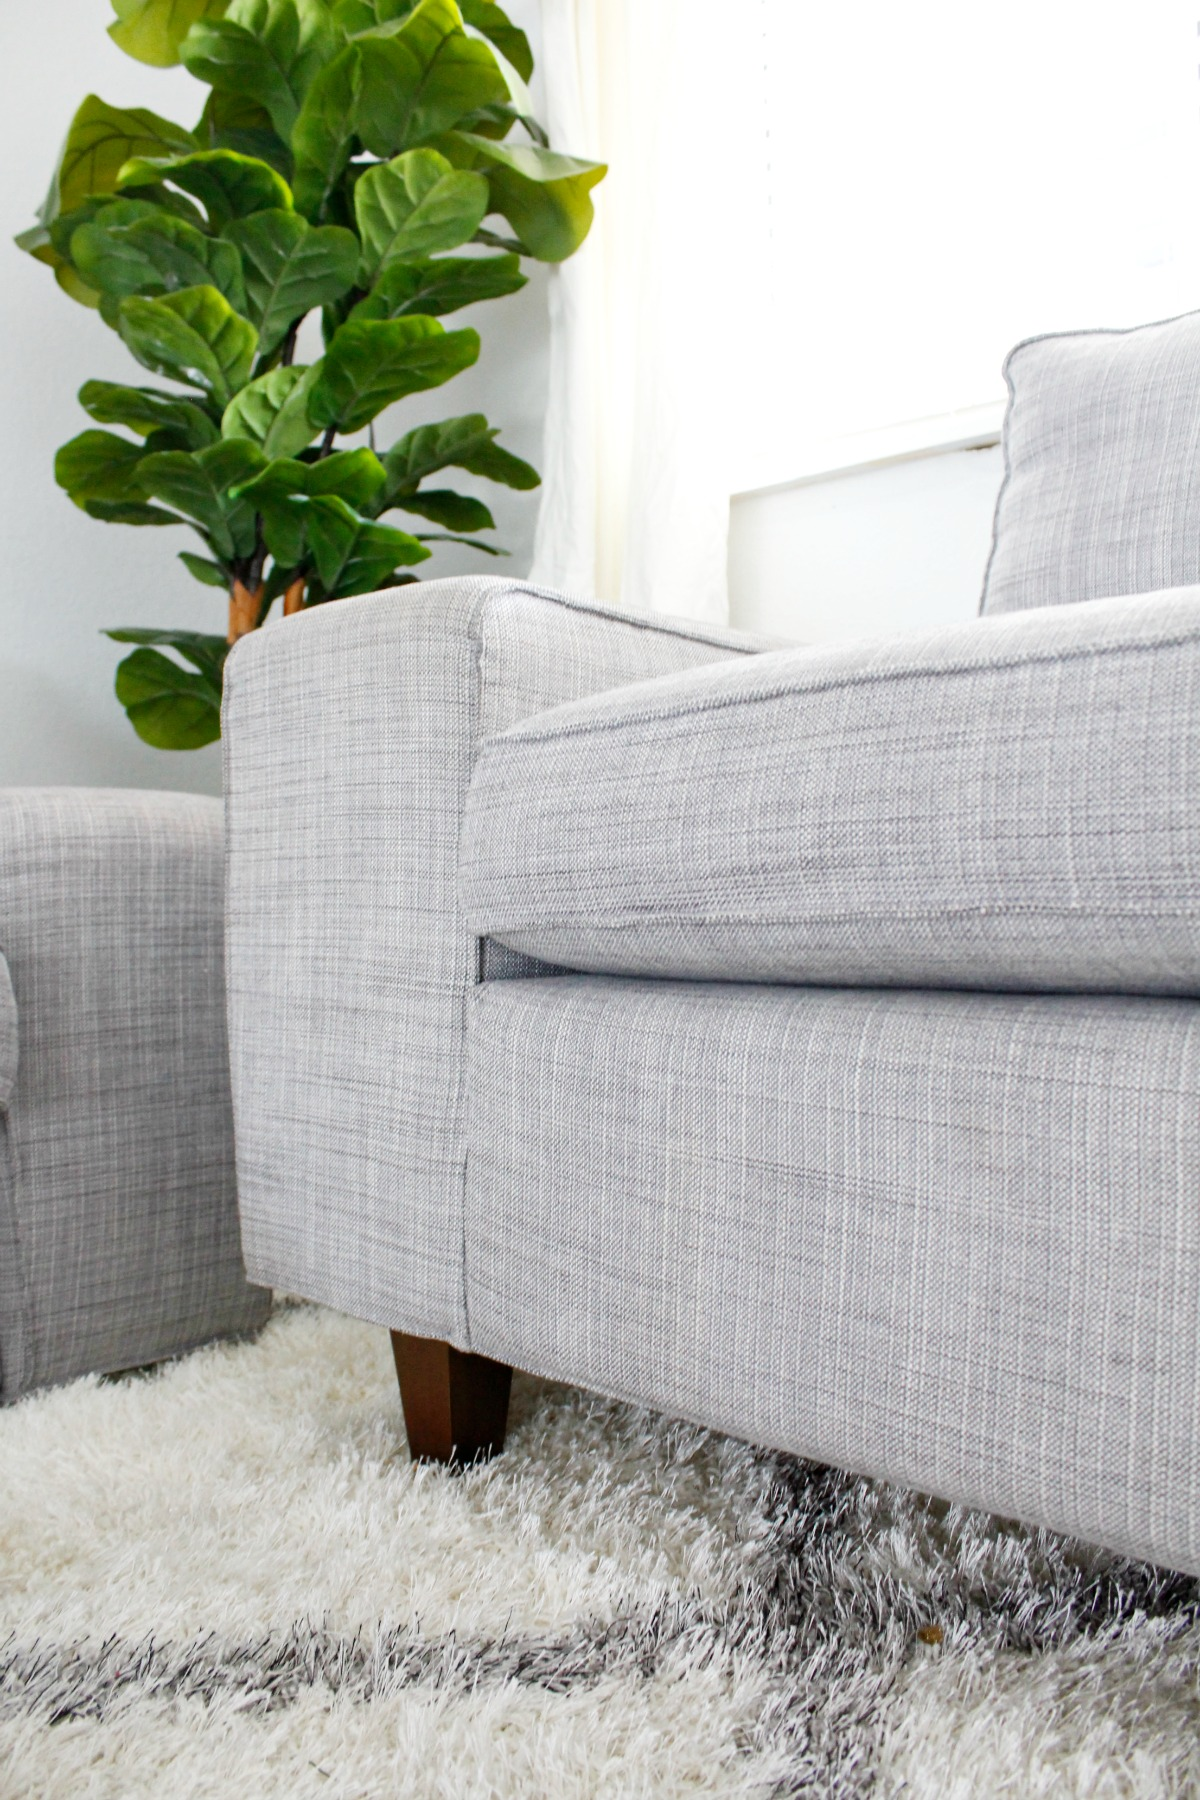 sofa with legs or without living room design ideas corner changing got ugly change them thesofa